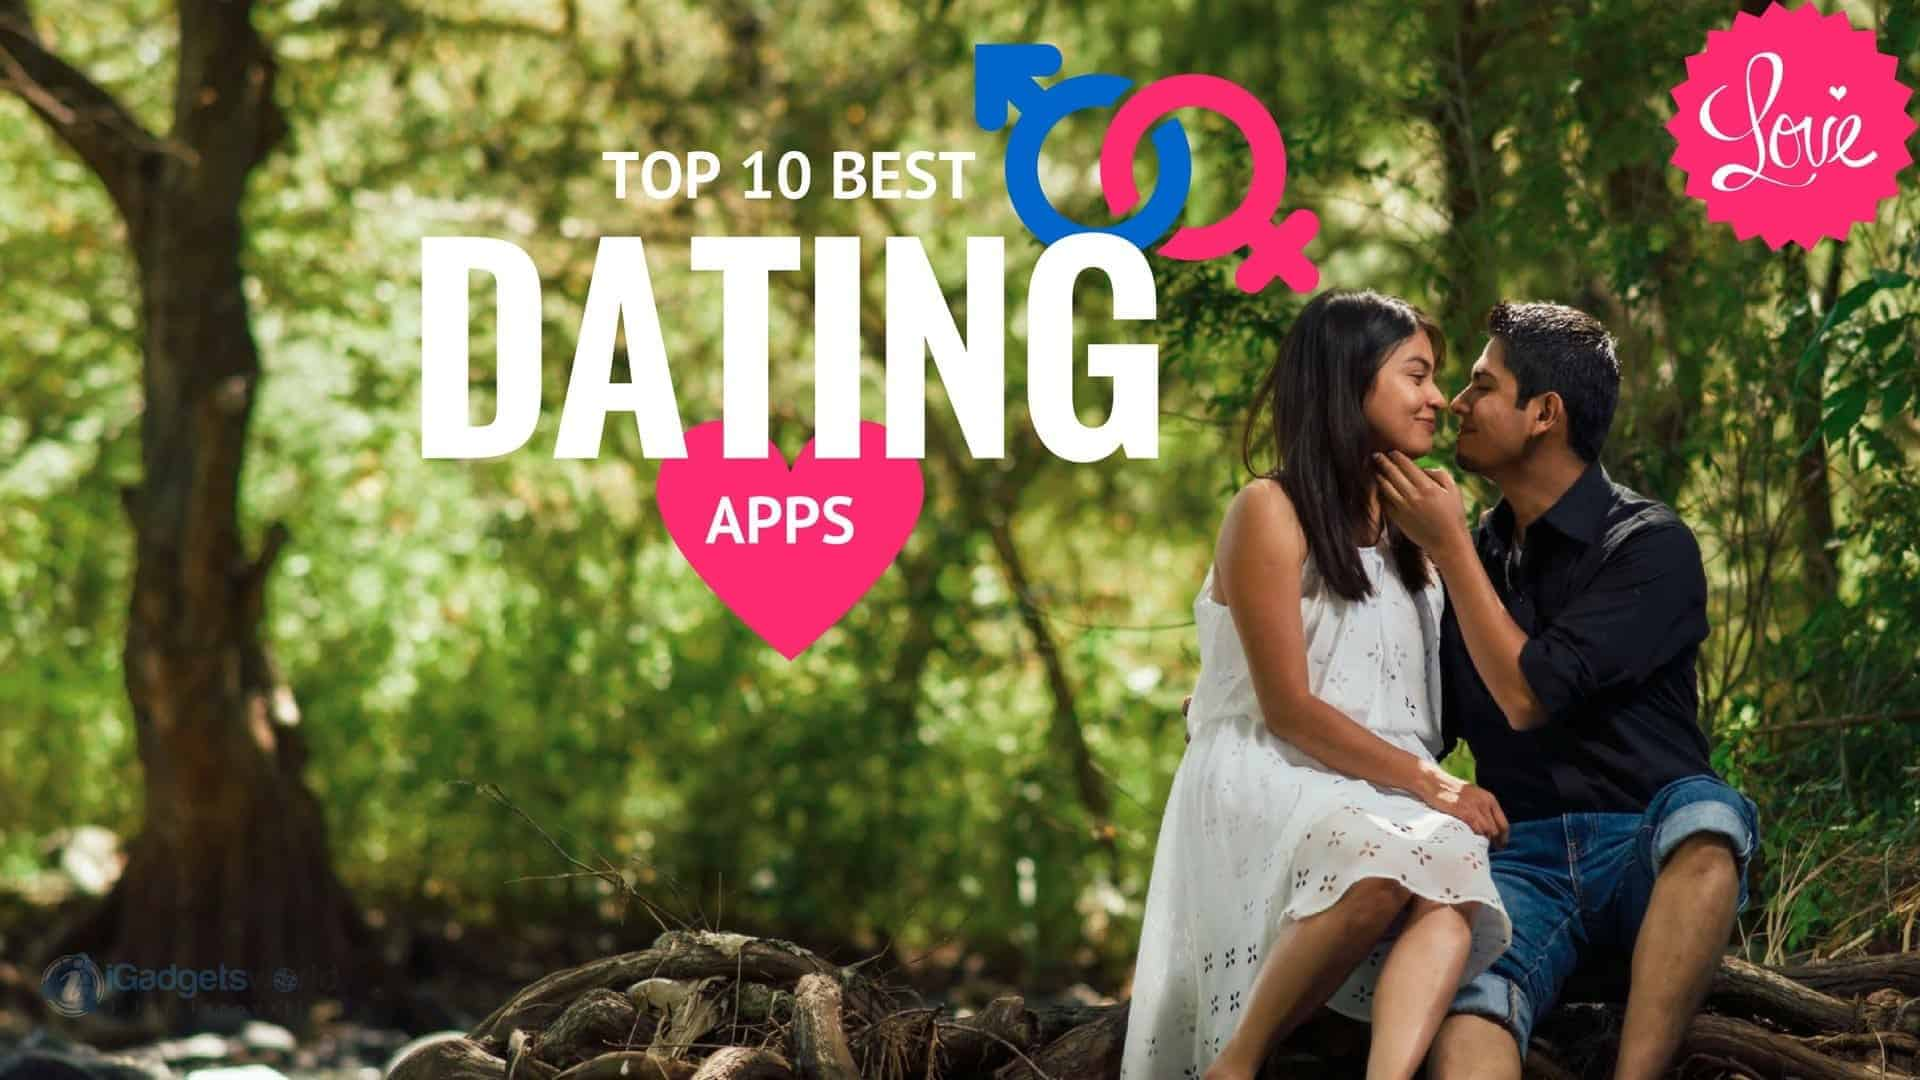 List of best dating apps in india